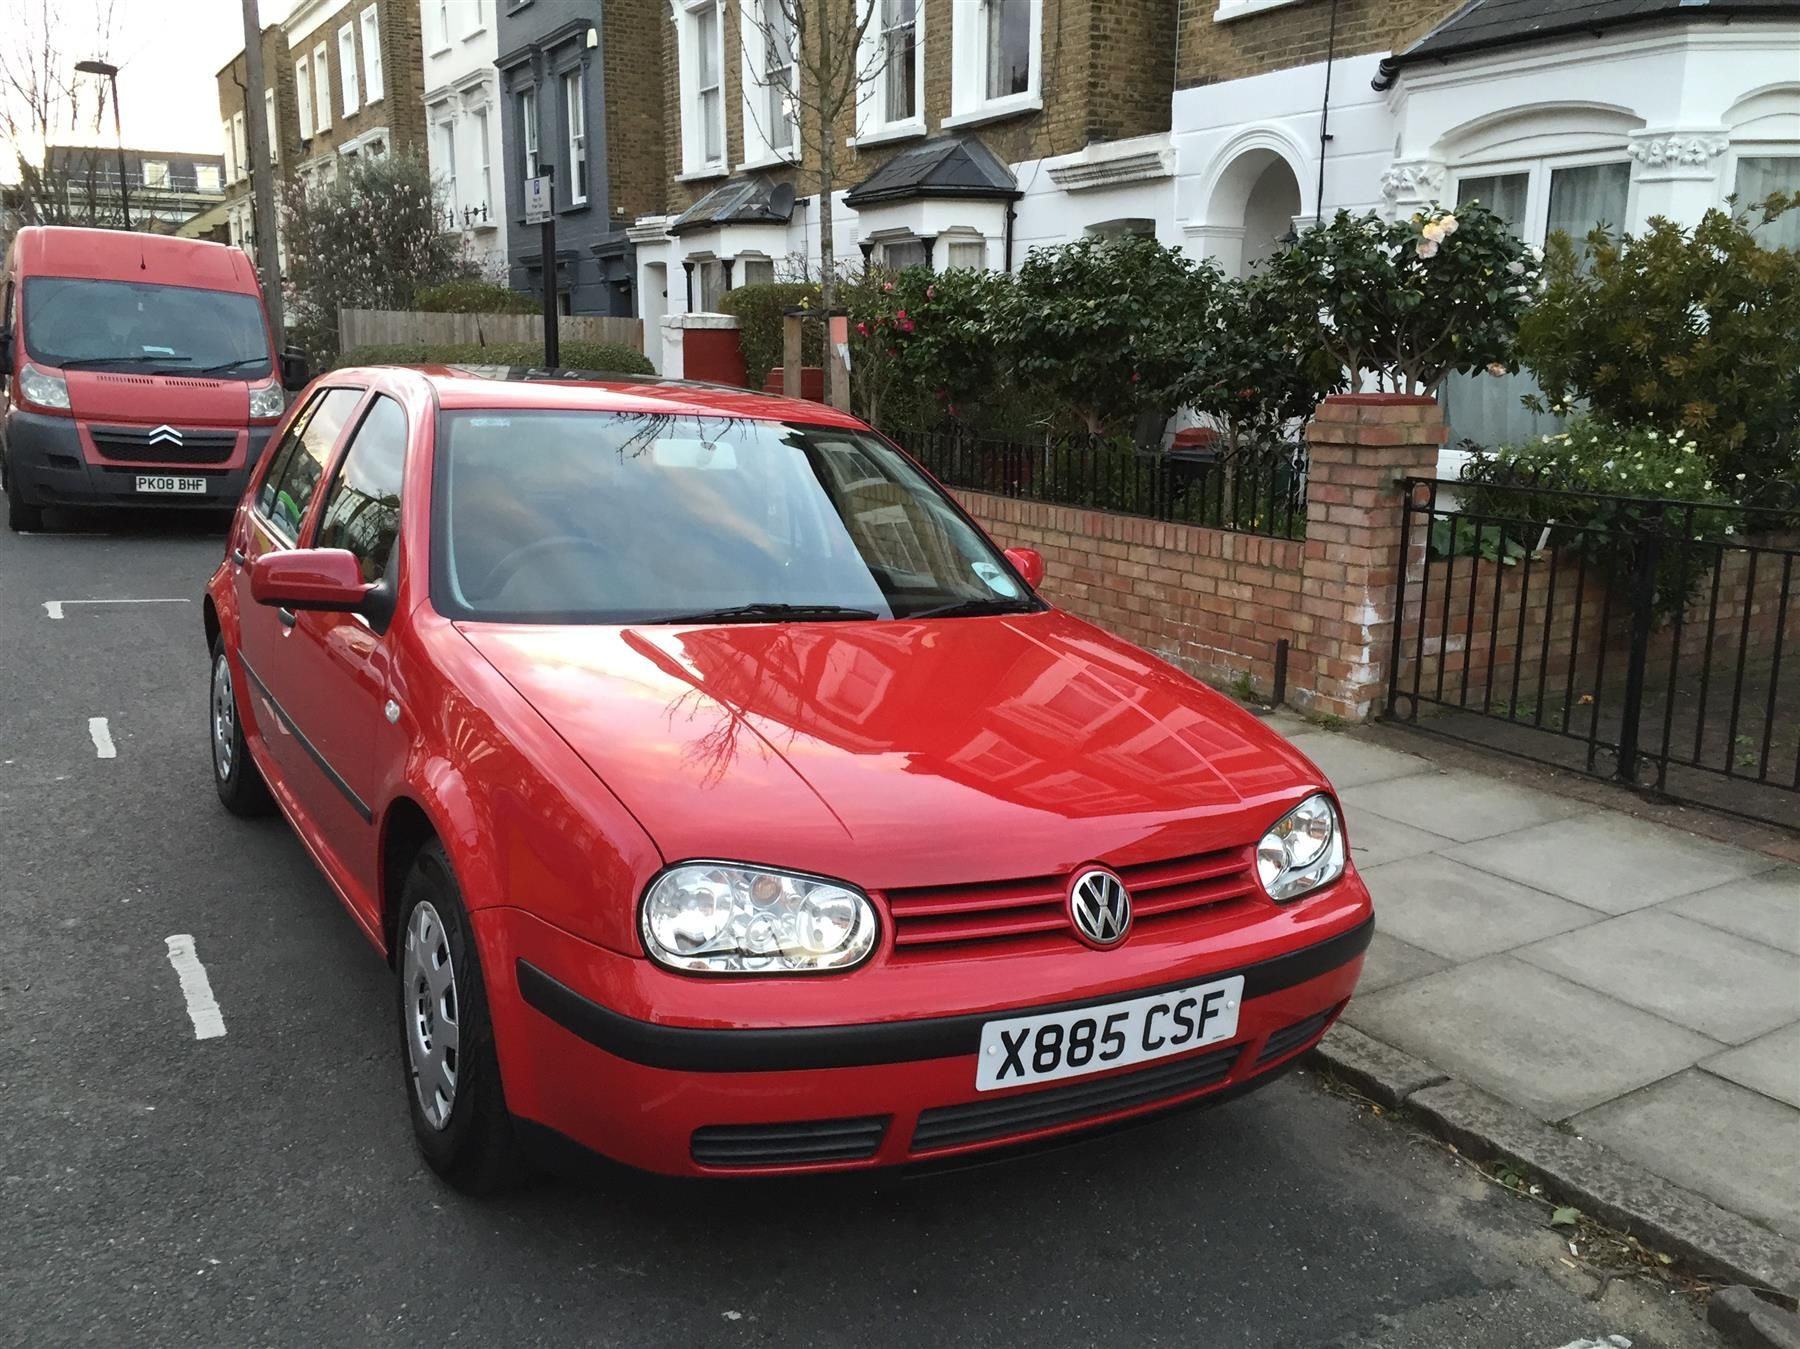 port honda cars volkswagen large in for westwood vehicles sale bc used trucks moody